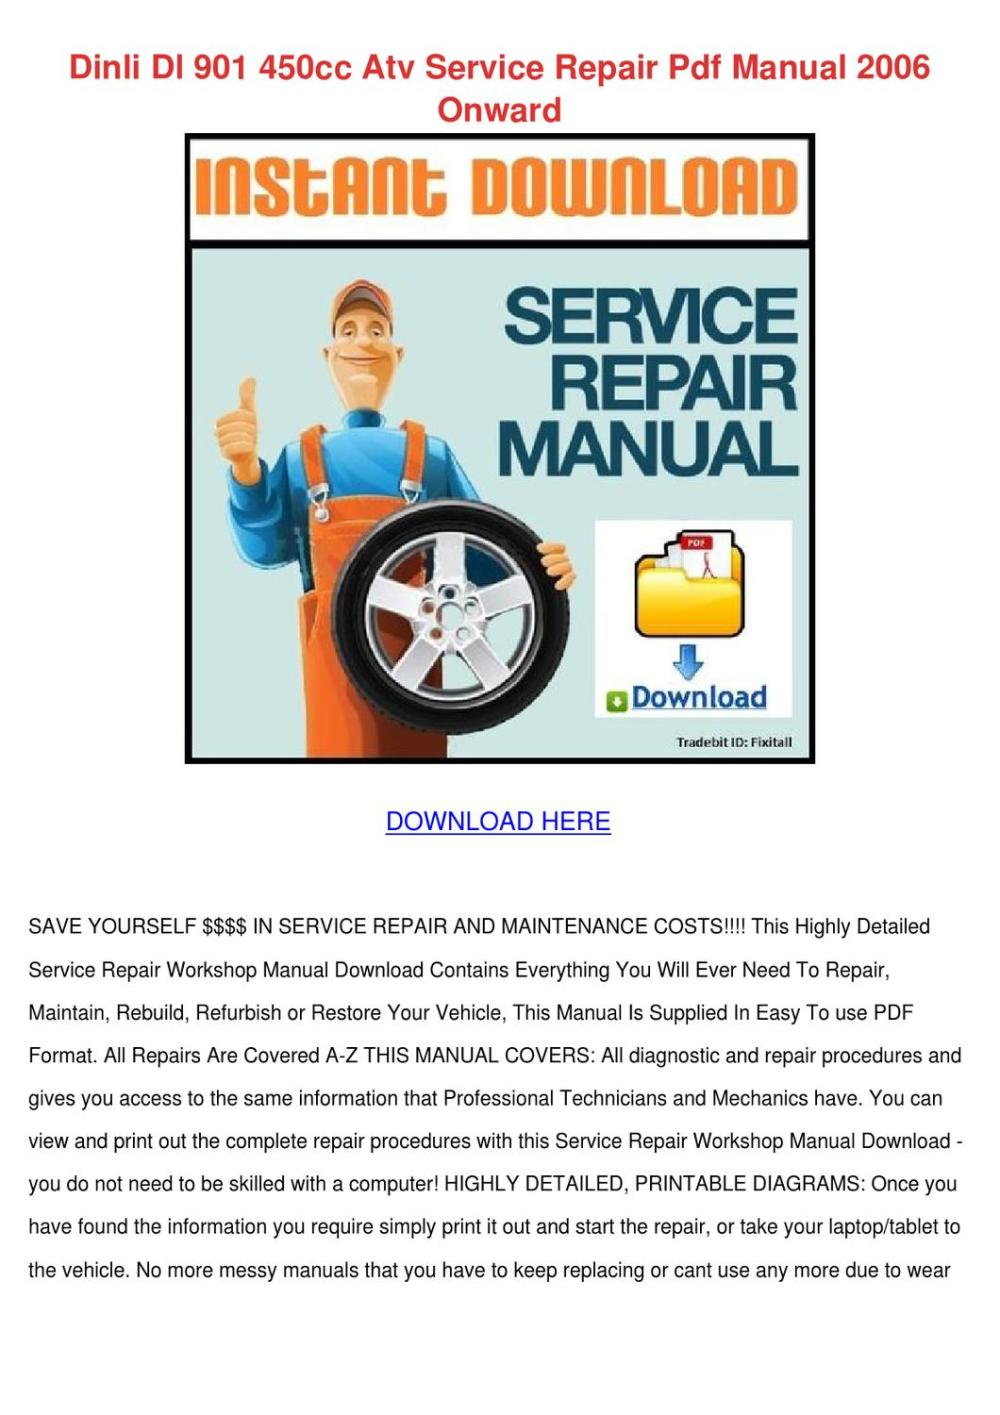 medium resolution of dinli dl603 helix 50cc 90cc chinese atv owners manual dinli dl 901 450cc quad service repair manual pdf nightwitchbodyart books library user to find out